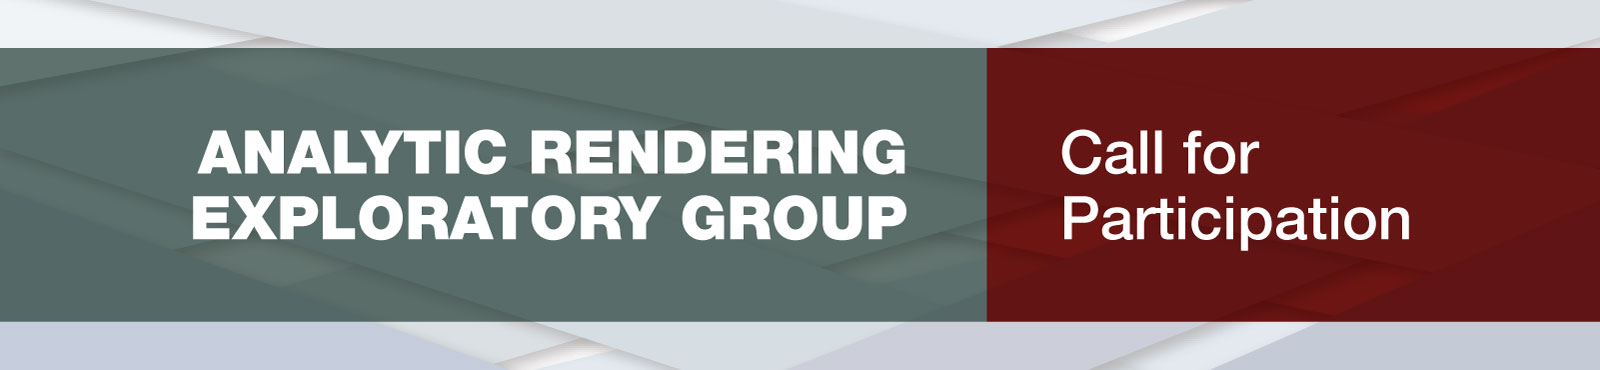 Analytic Rendering Exploratory Group - Call for Participation